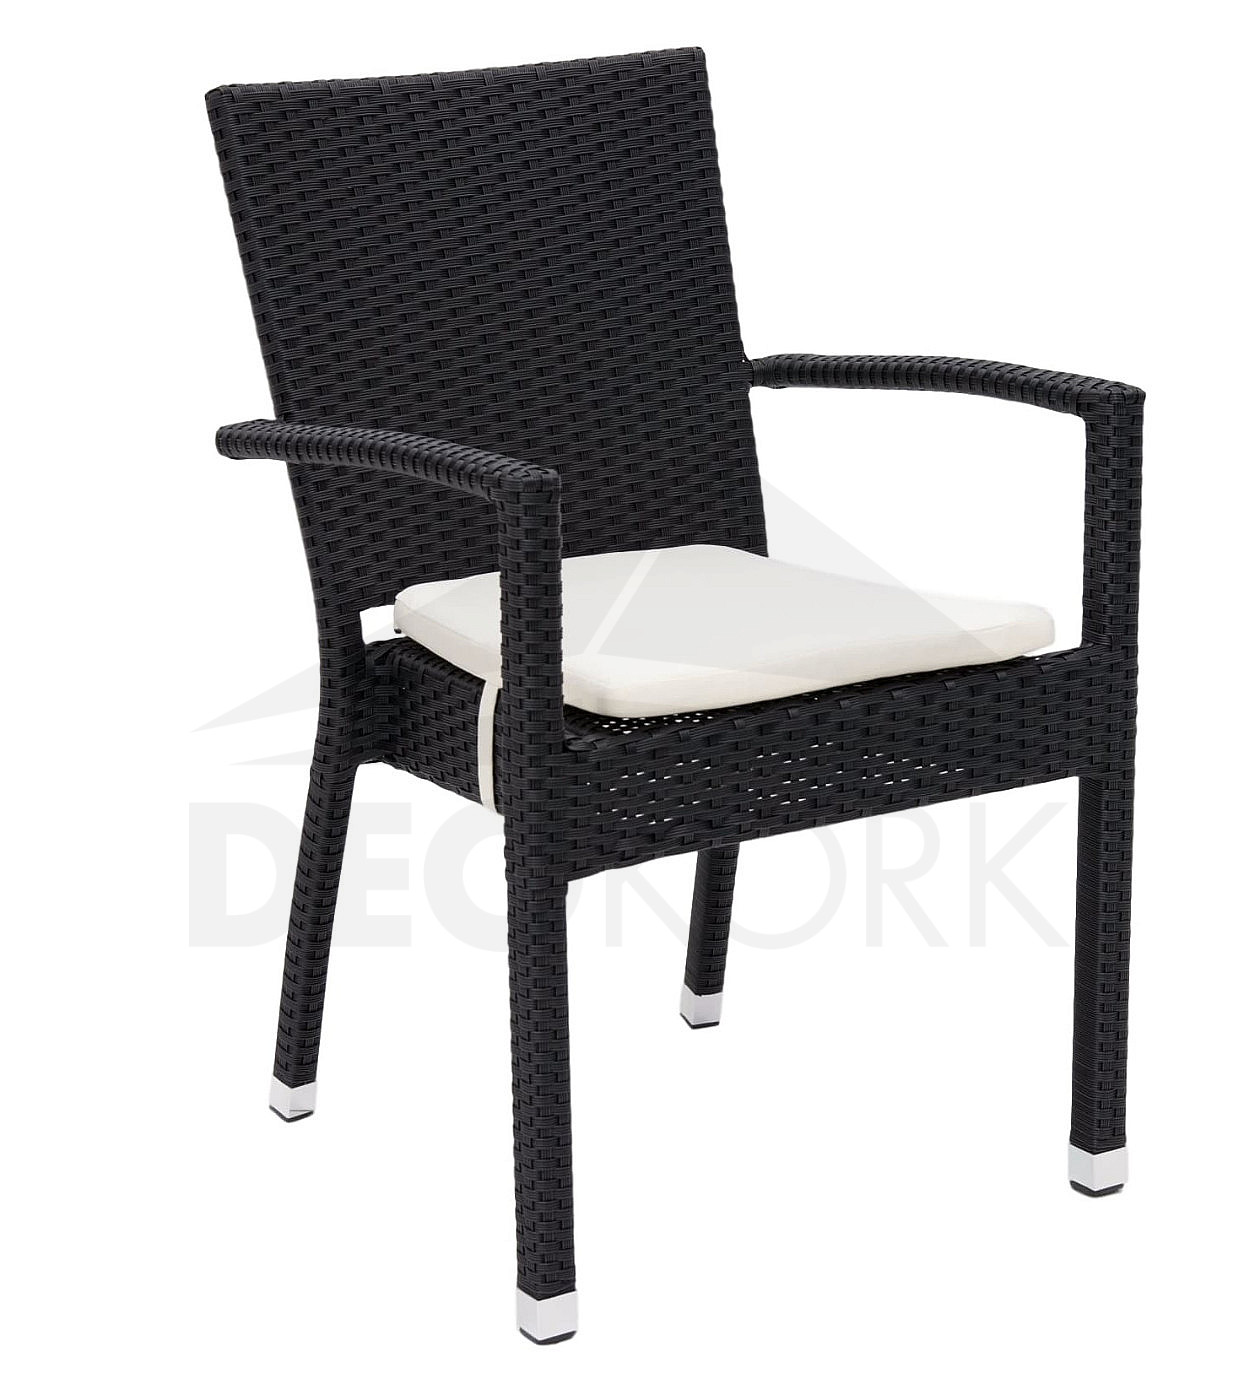 gartenm belset aus polyrattan napoli ii 1 6 schwarz i. Black Bedroom Furniture Sets. Home Design Ideas